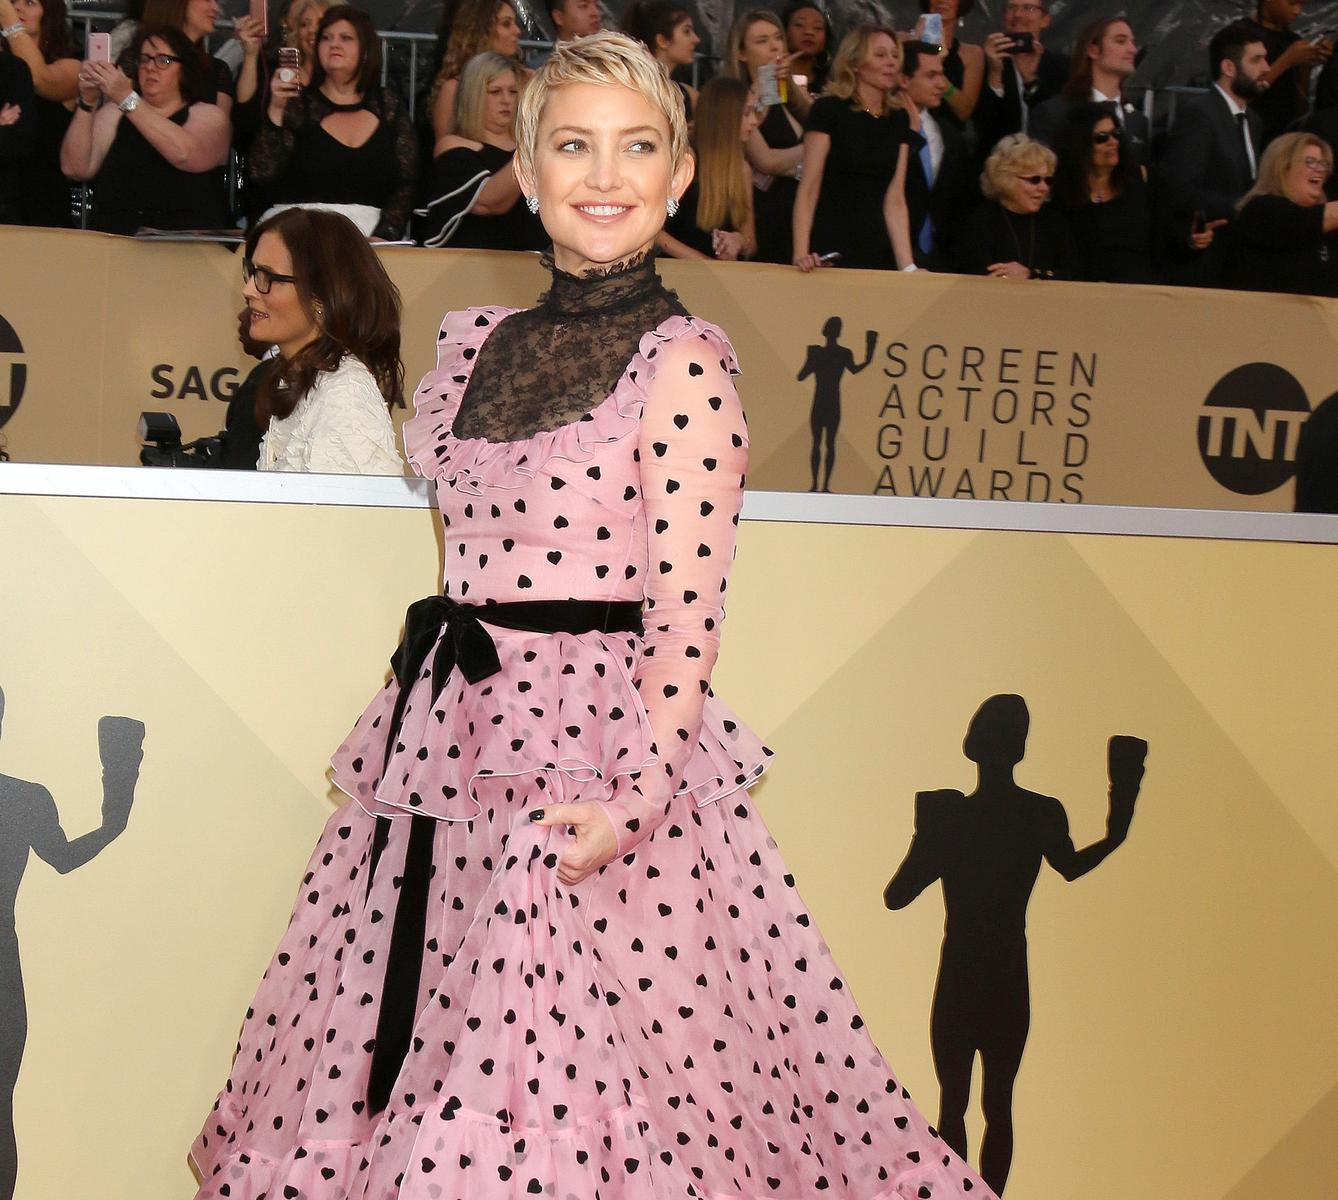 Kate Hudson Short Hair Pink Dress Black Heart Polka Dots